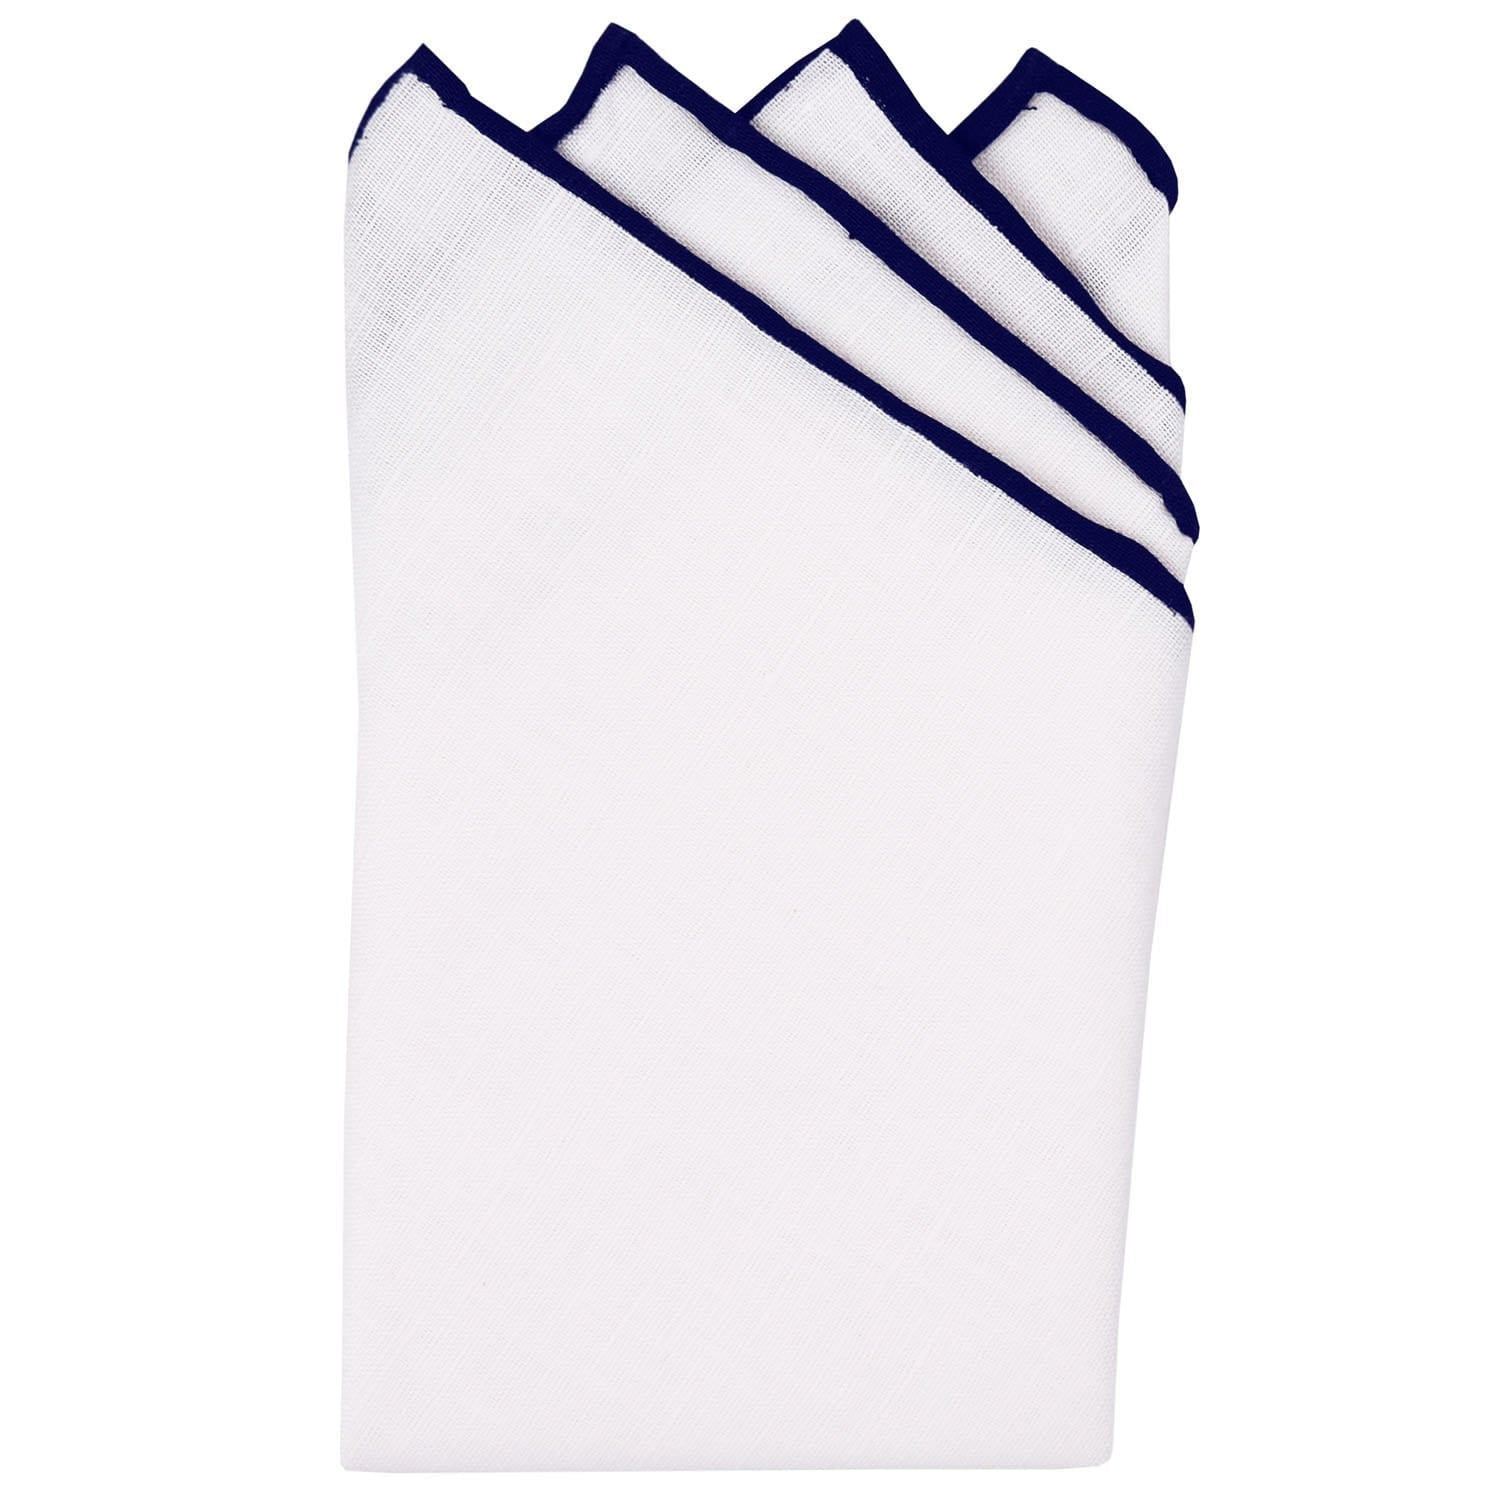 White/Navy Pre-Folded Linen Pocket Square - Haspel Clothing